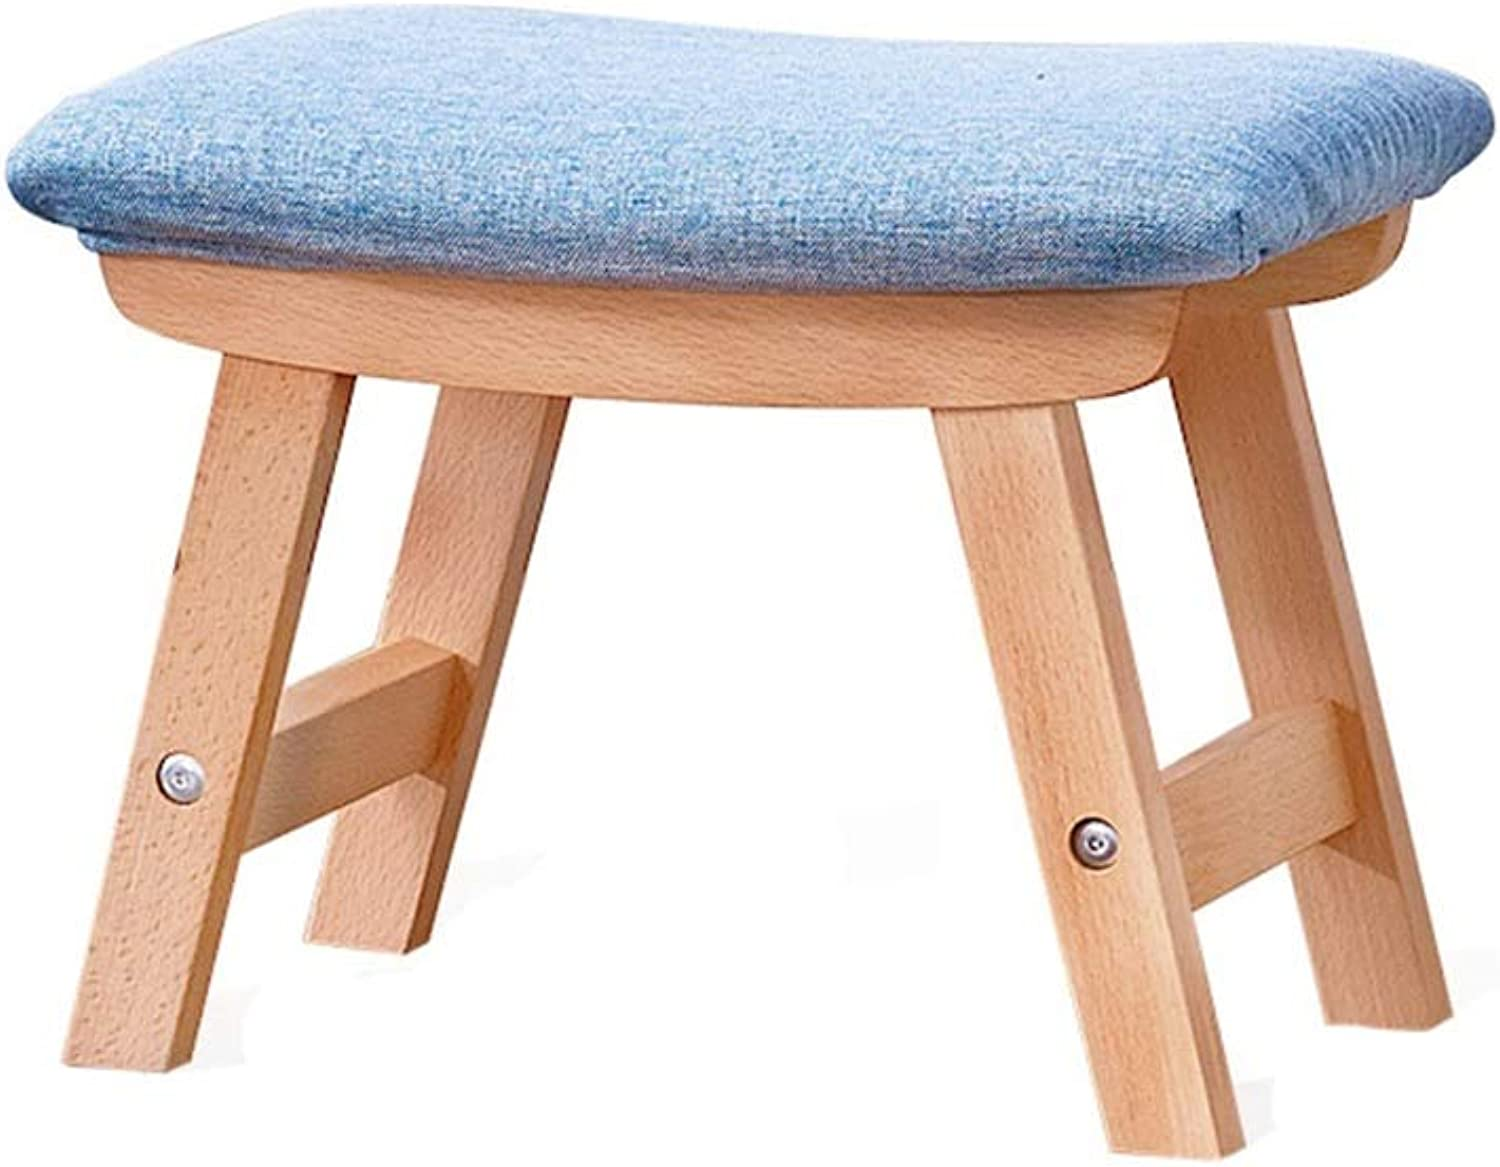 Fabric Footstool, Restaurant Hotel Small Stool Living Room Bedroom Footstool Wood Rectangle Small Bench Height 29CM (color   bluee)